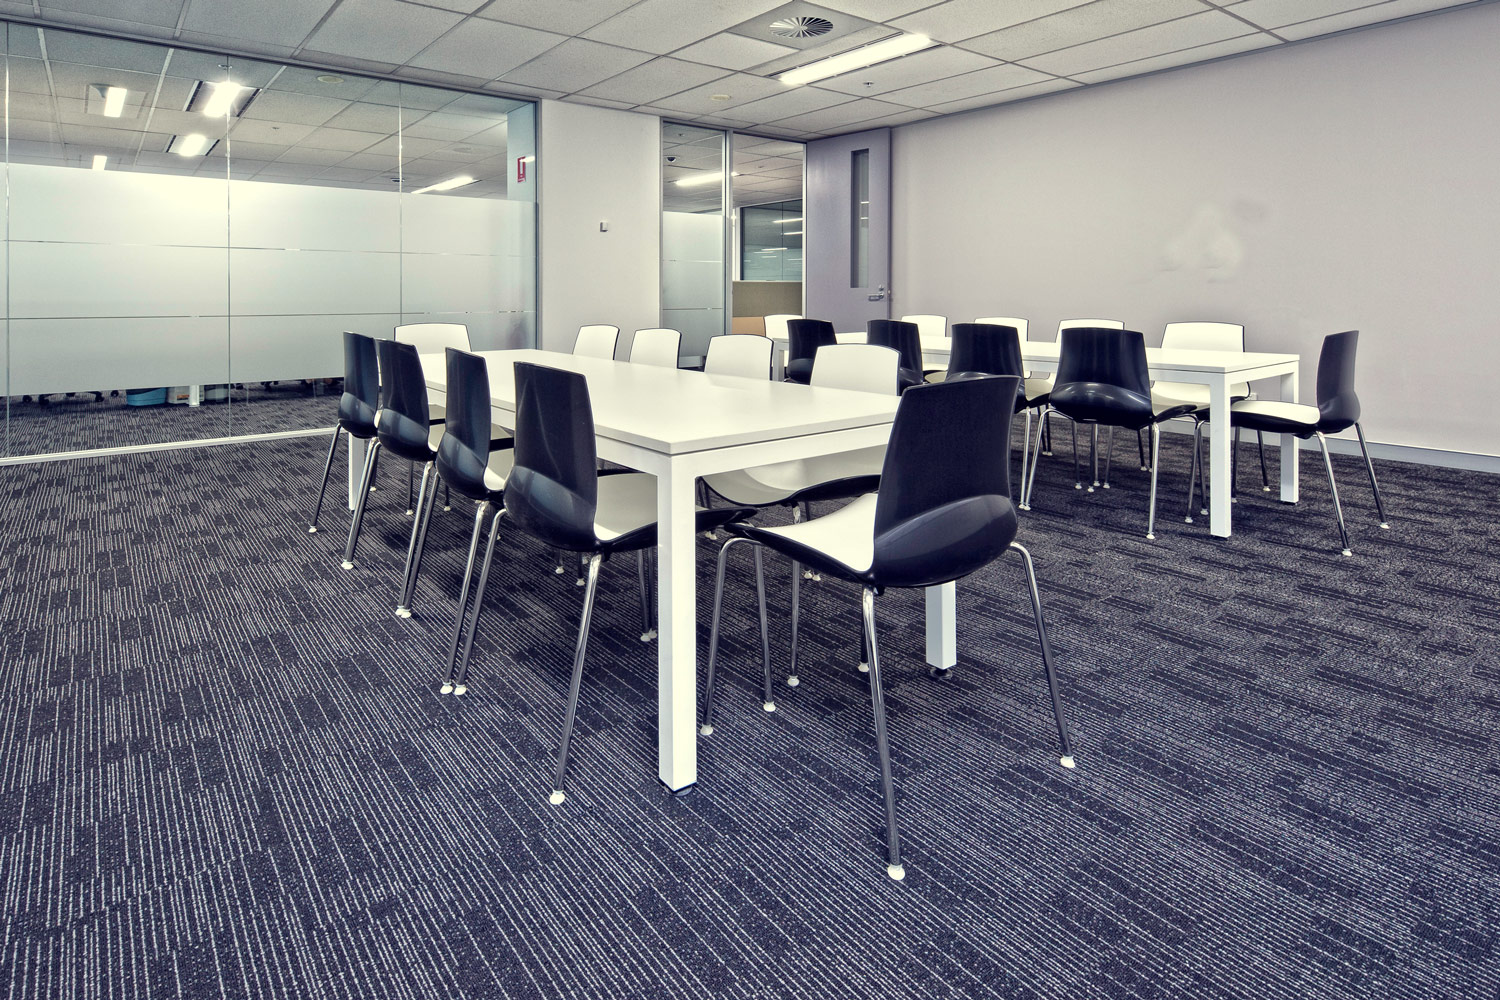 Lunch room tables, Neo casual chairs